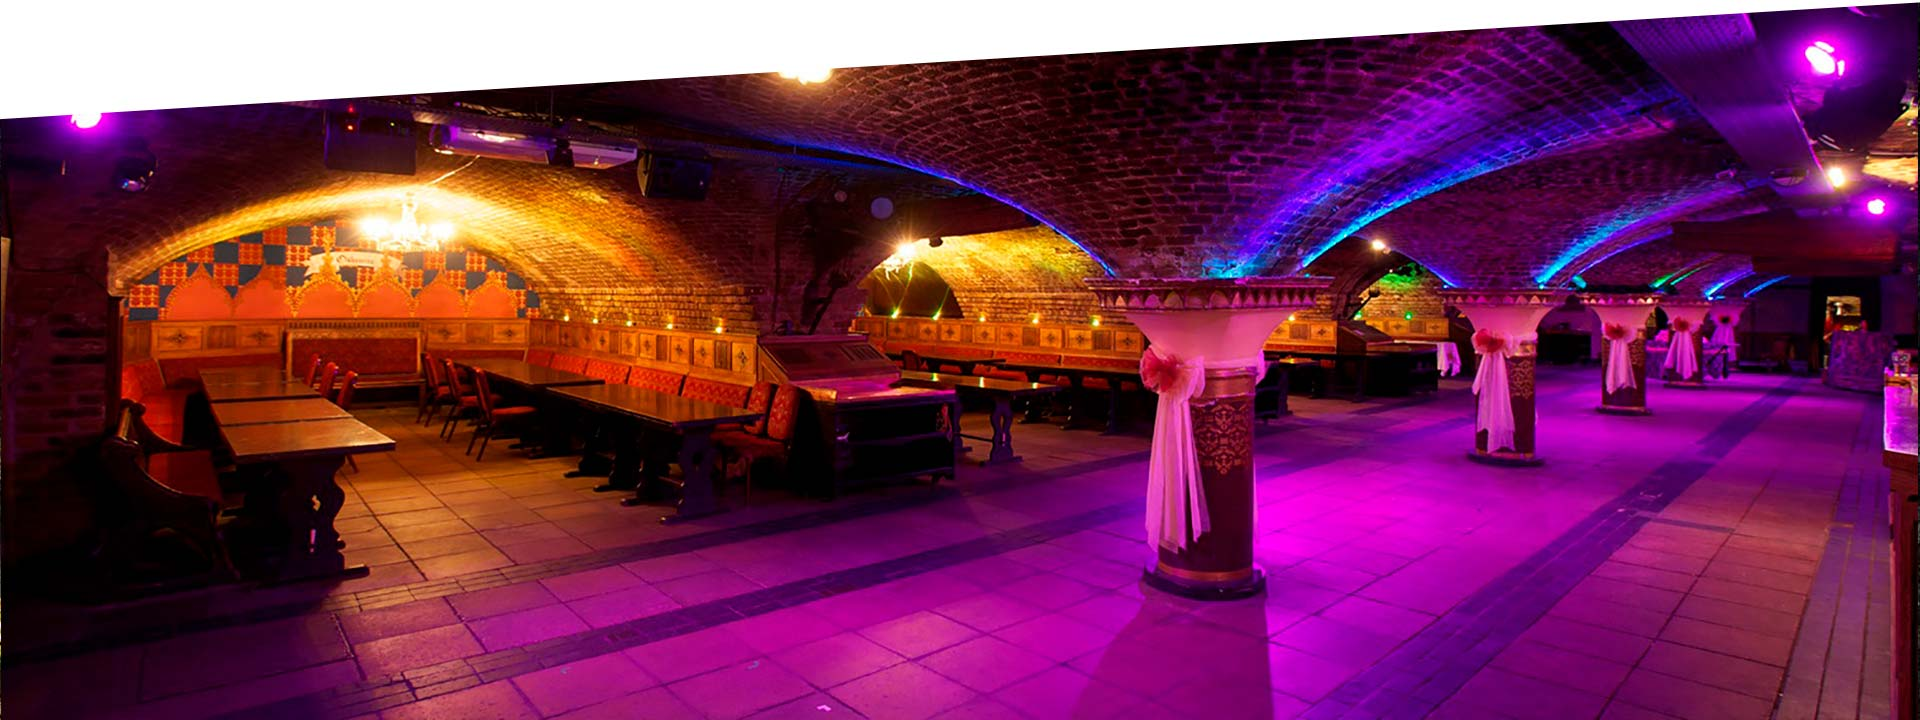 edieval Banquet London Christmas Party Venue